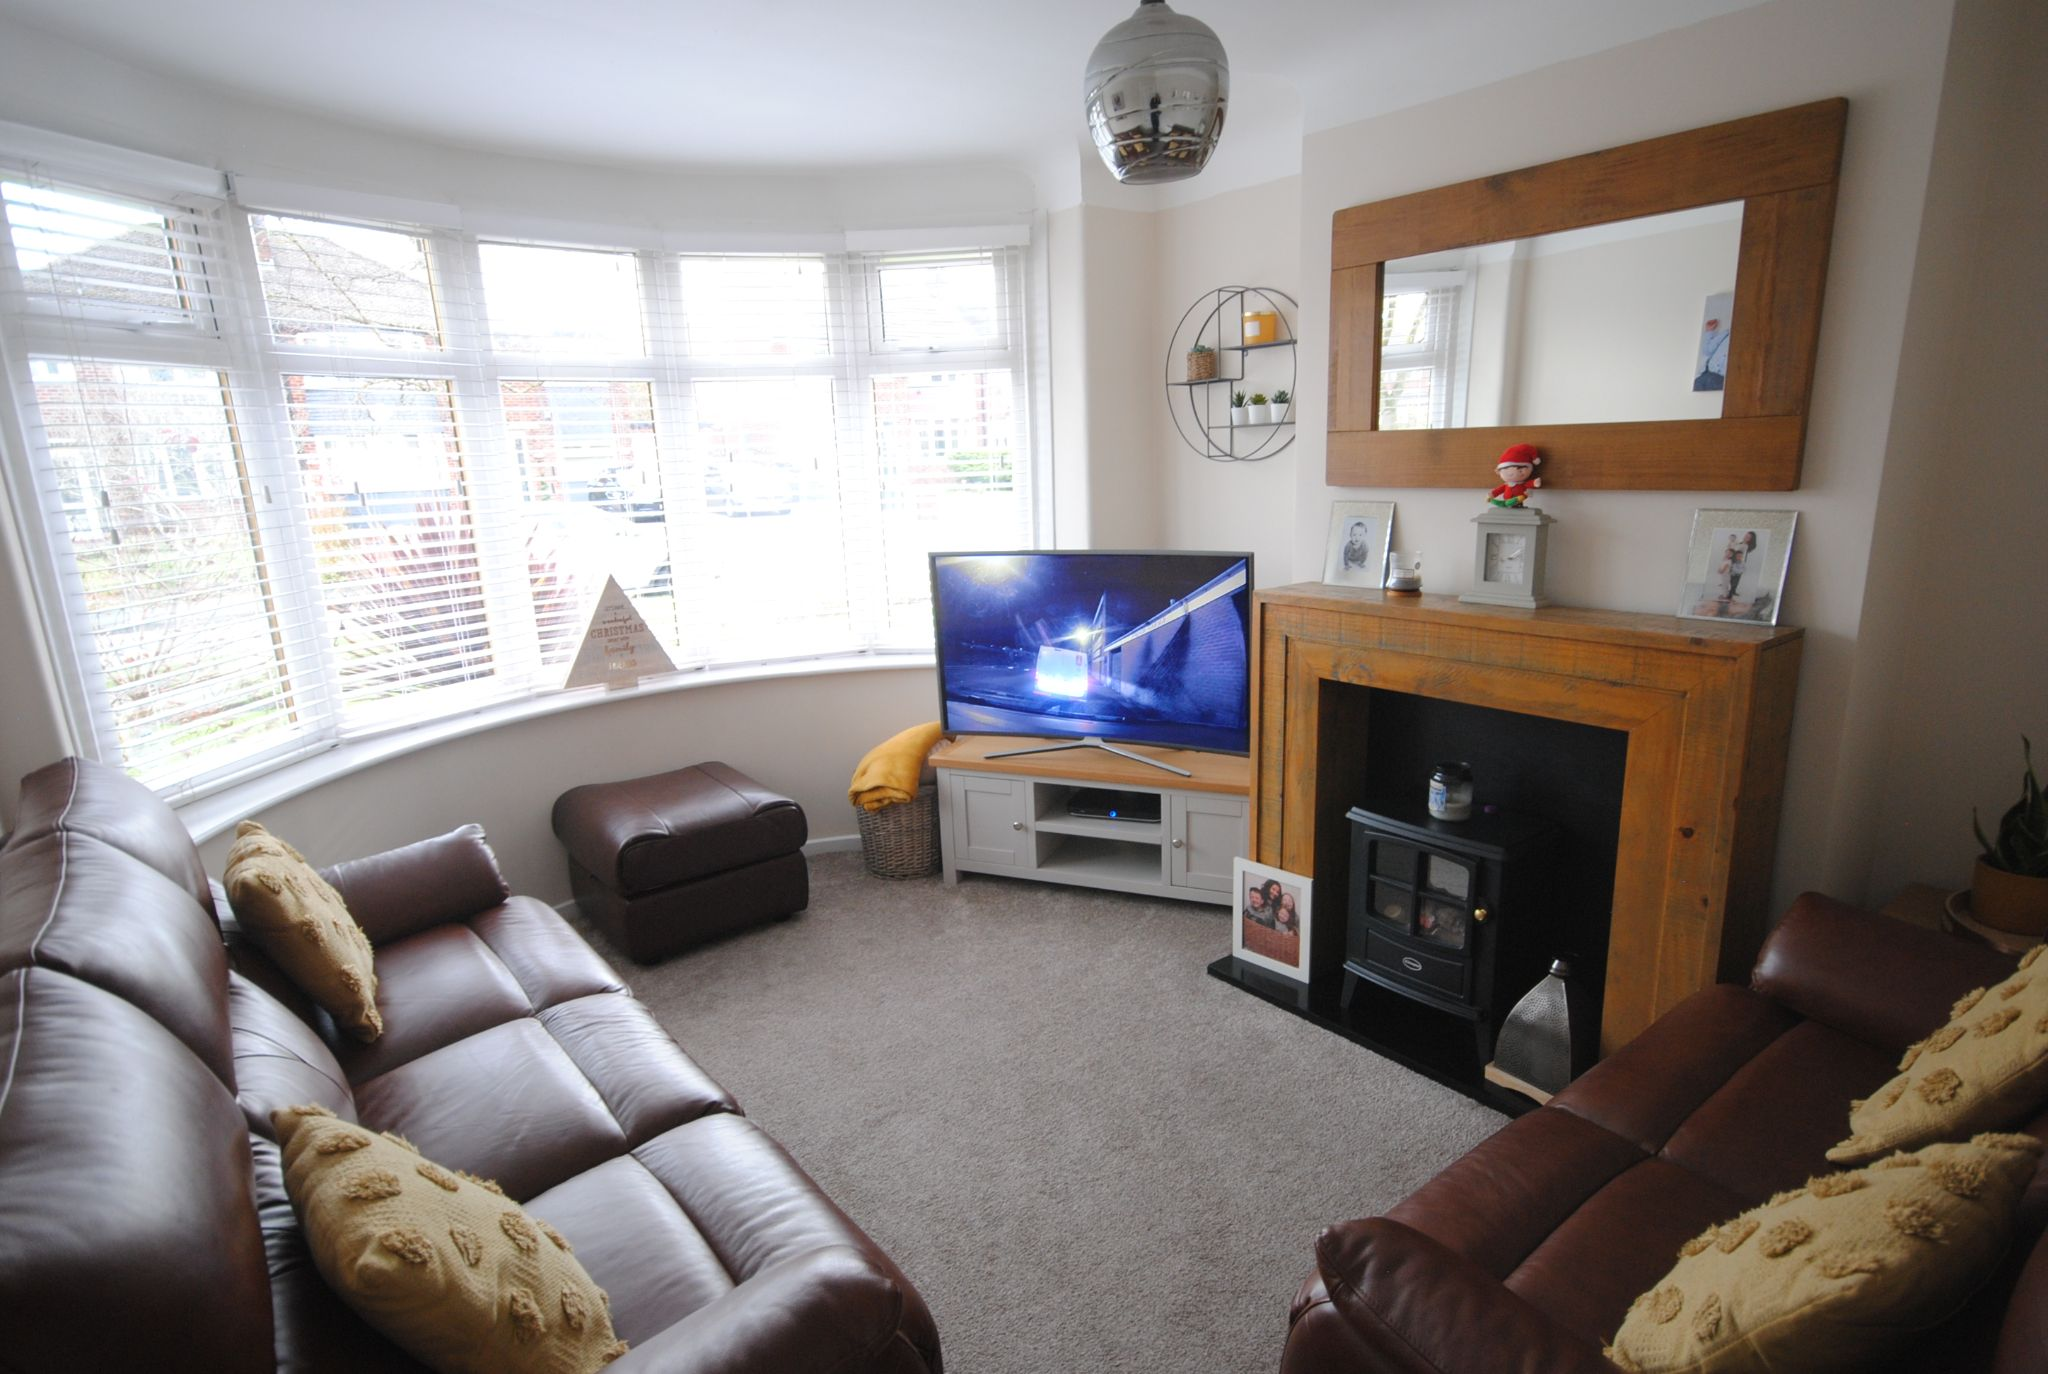 4 bedroom semi-detached house Sale Agreed in Manchester - Photograph 38.